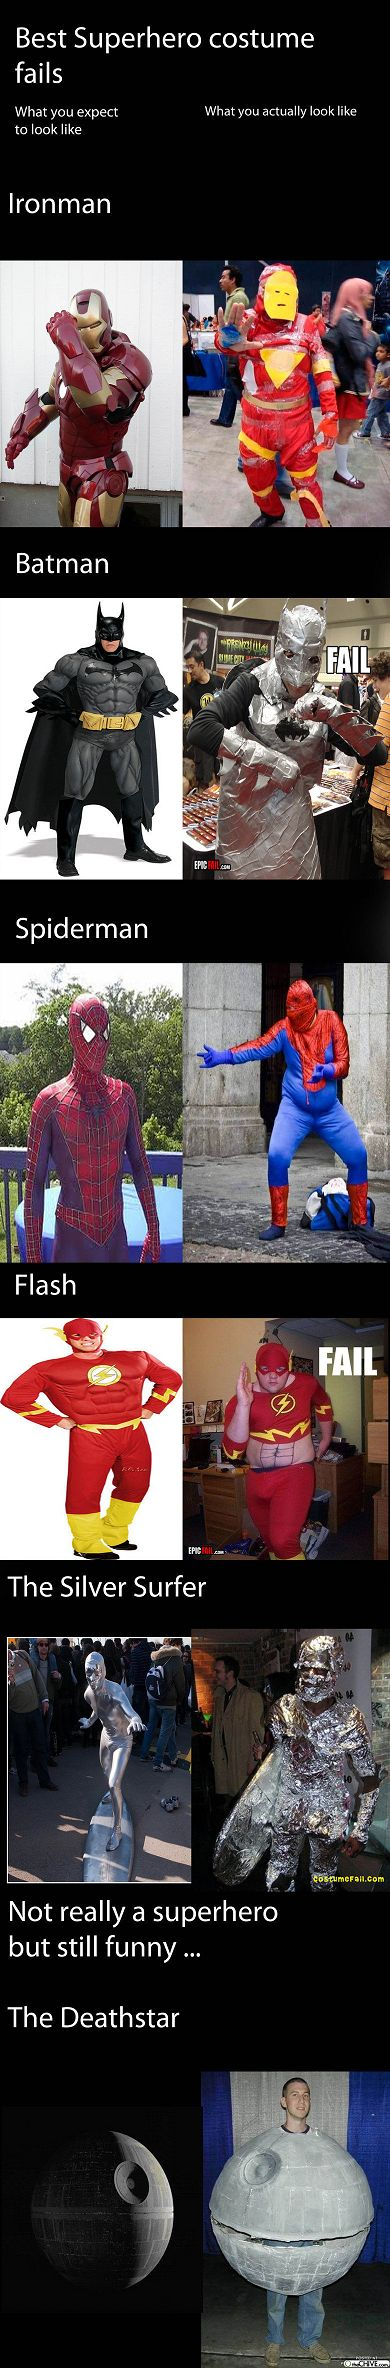 The Spider-Man one is my favorite, lol...